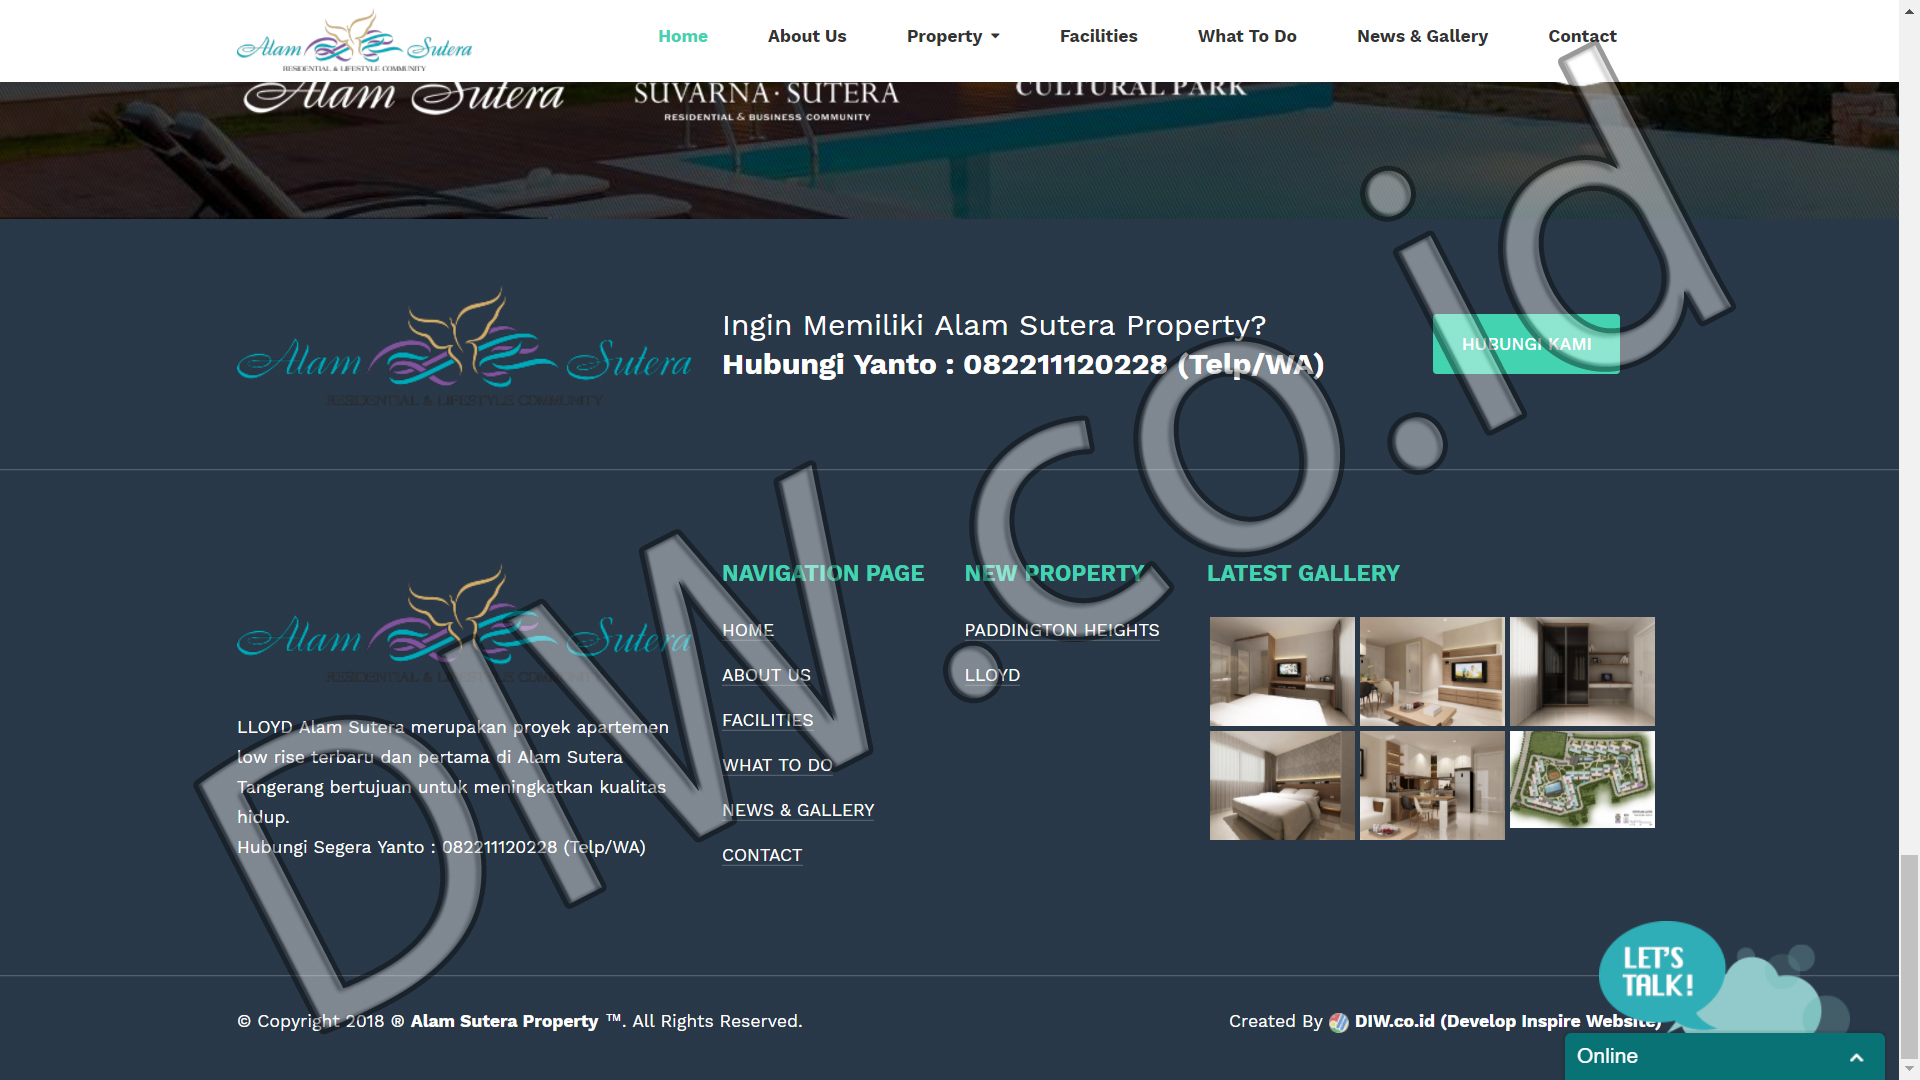 Portfolio 4 - Alam Sutera Property - Andri Sunardi - Freelancer - Web Developer - CEO DIW.co.id